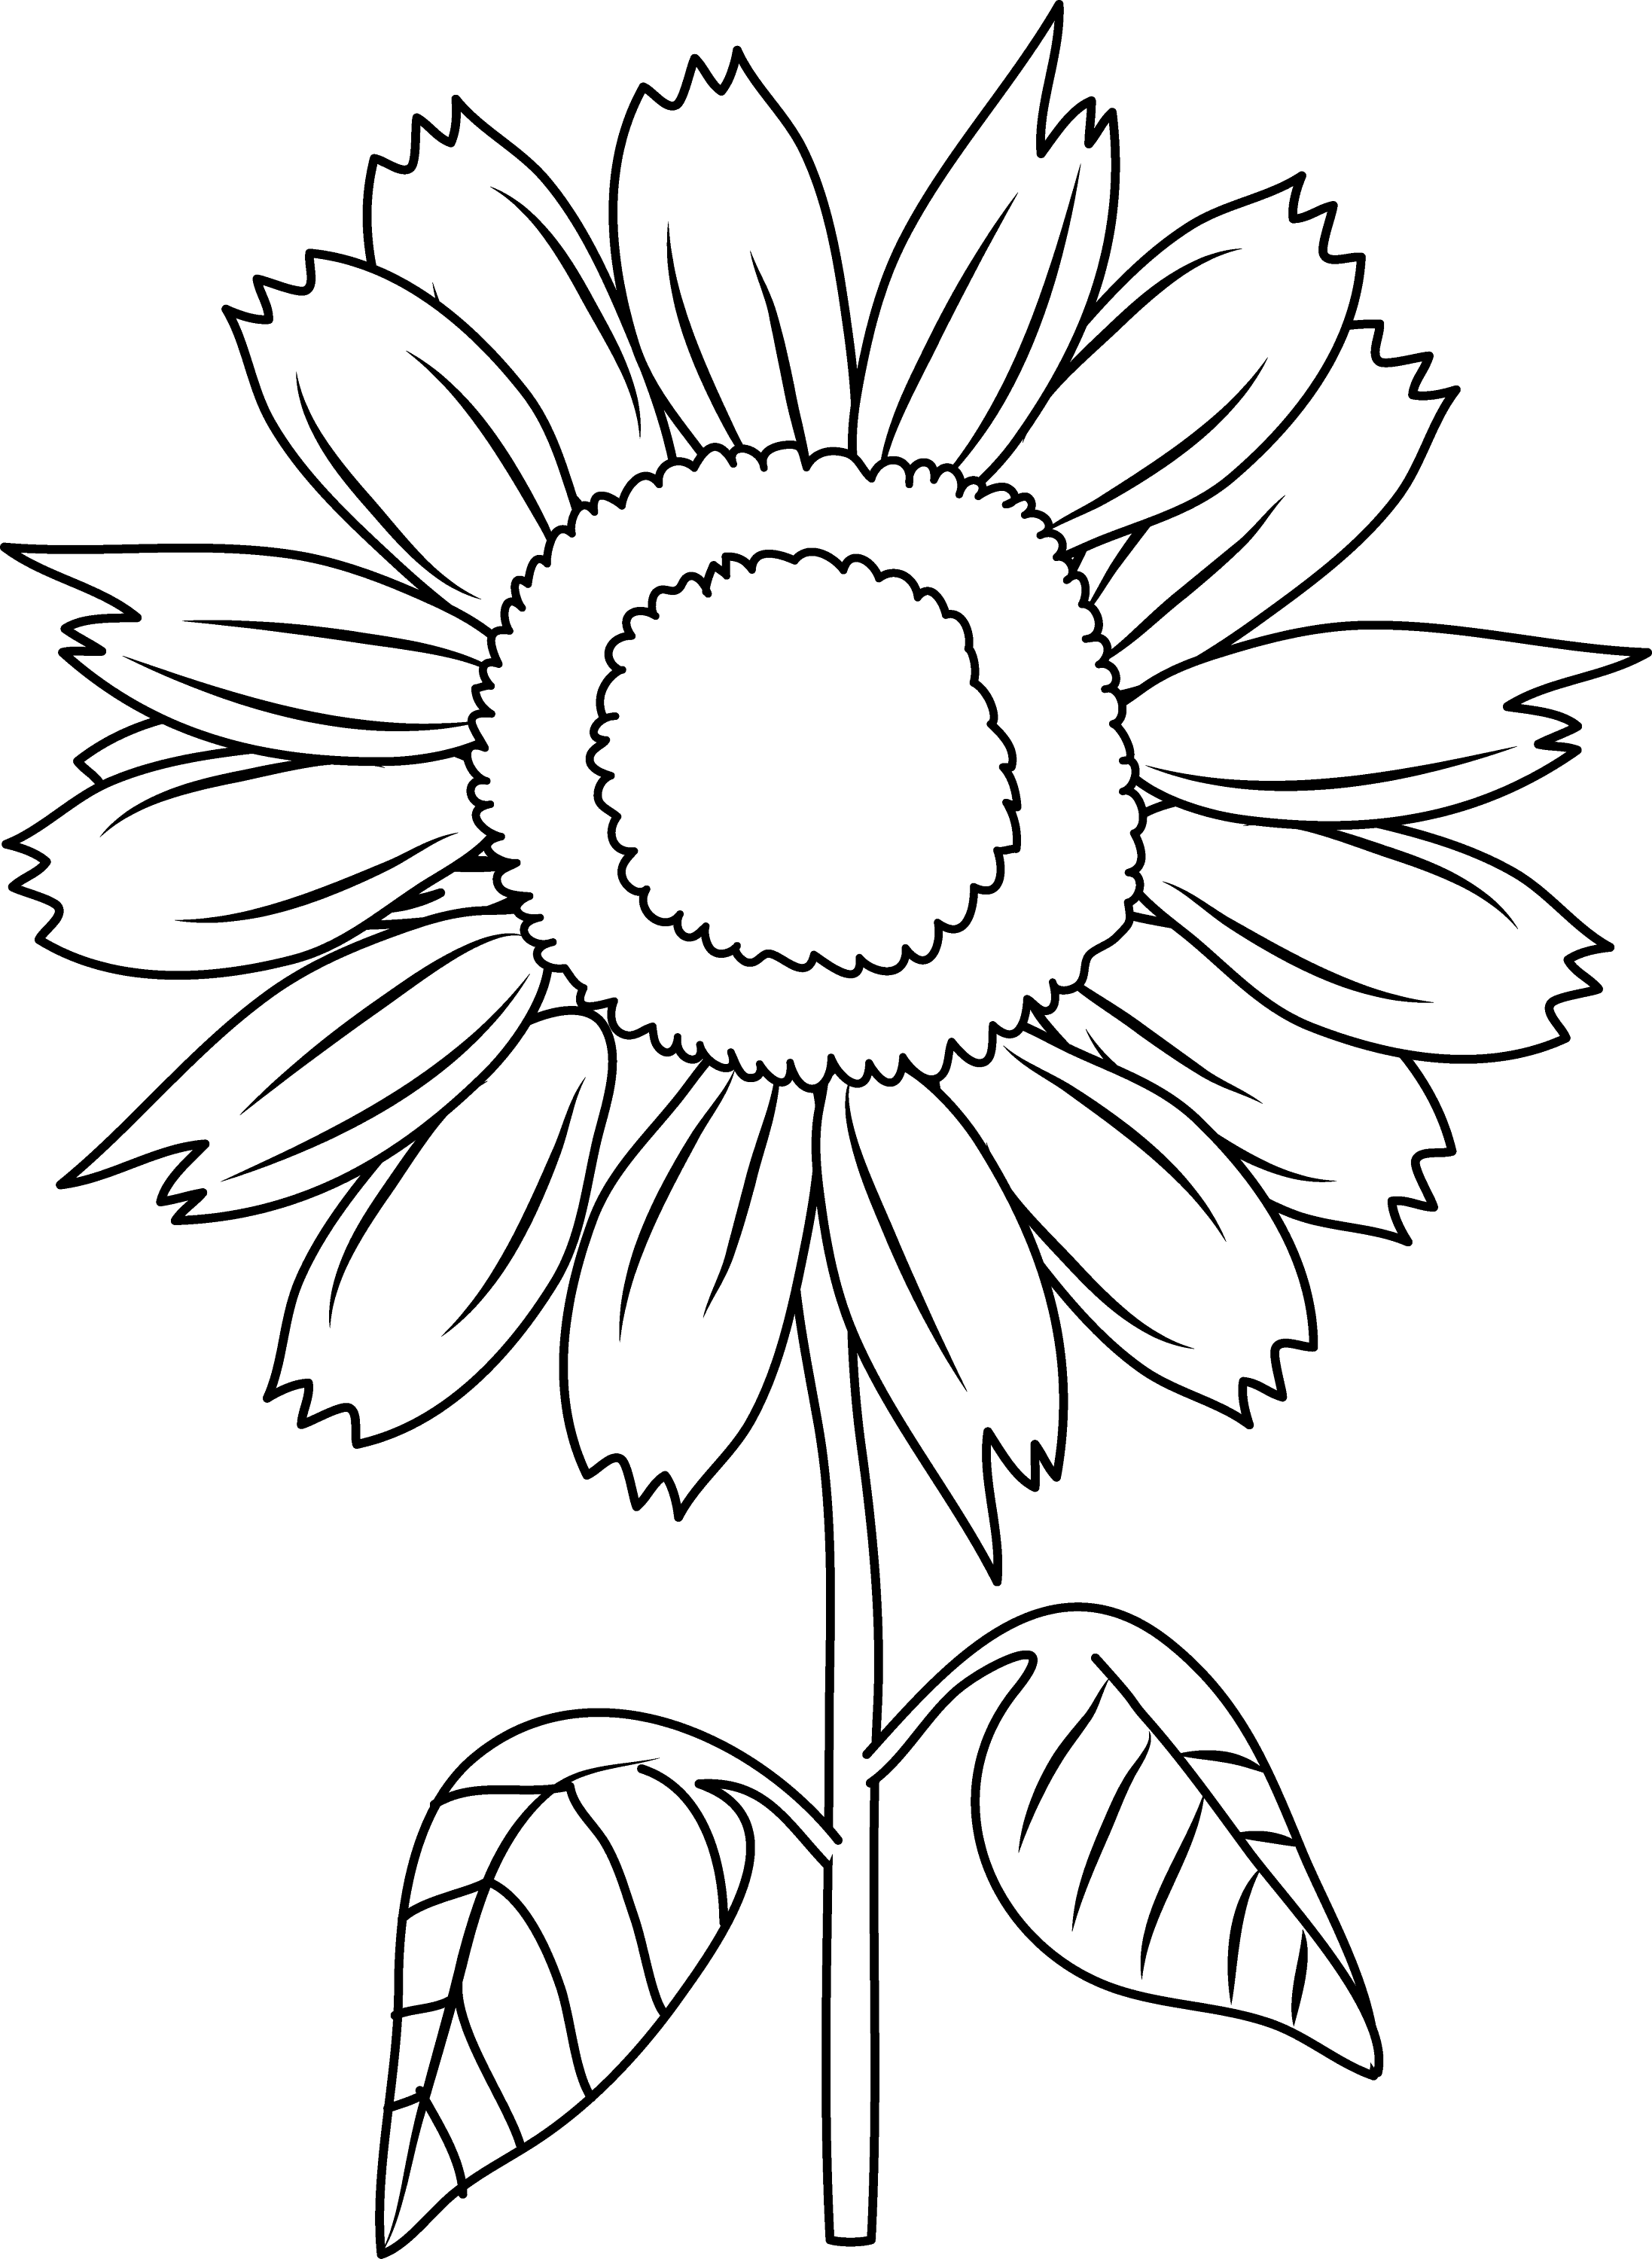 sunflower coloring sheets sunflower coloring page at getdrawings free download sunflower coloring sheets